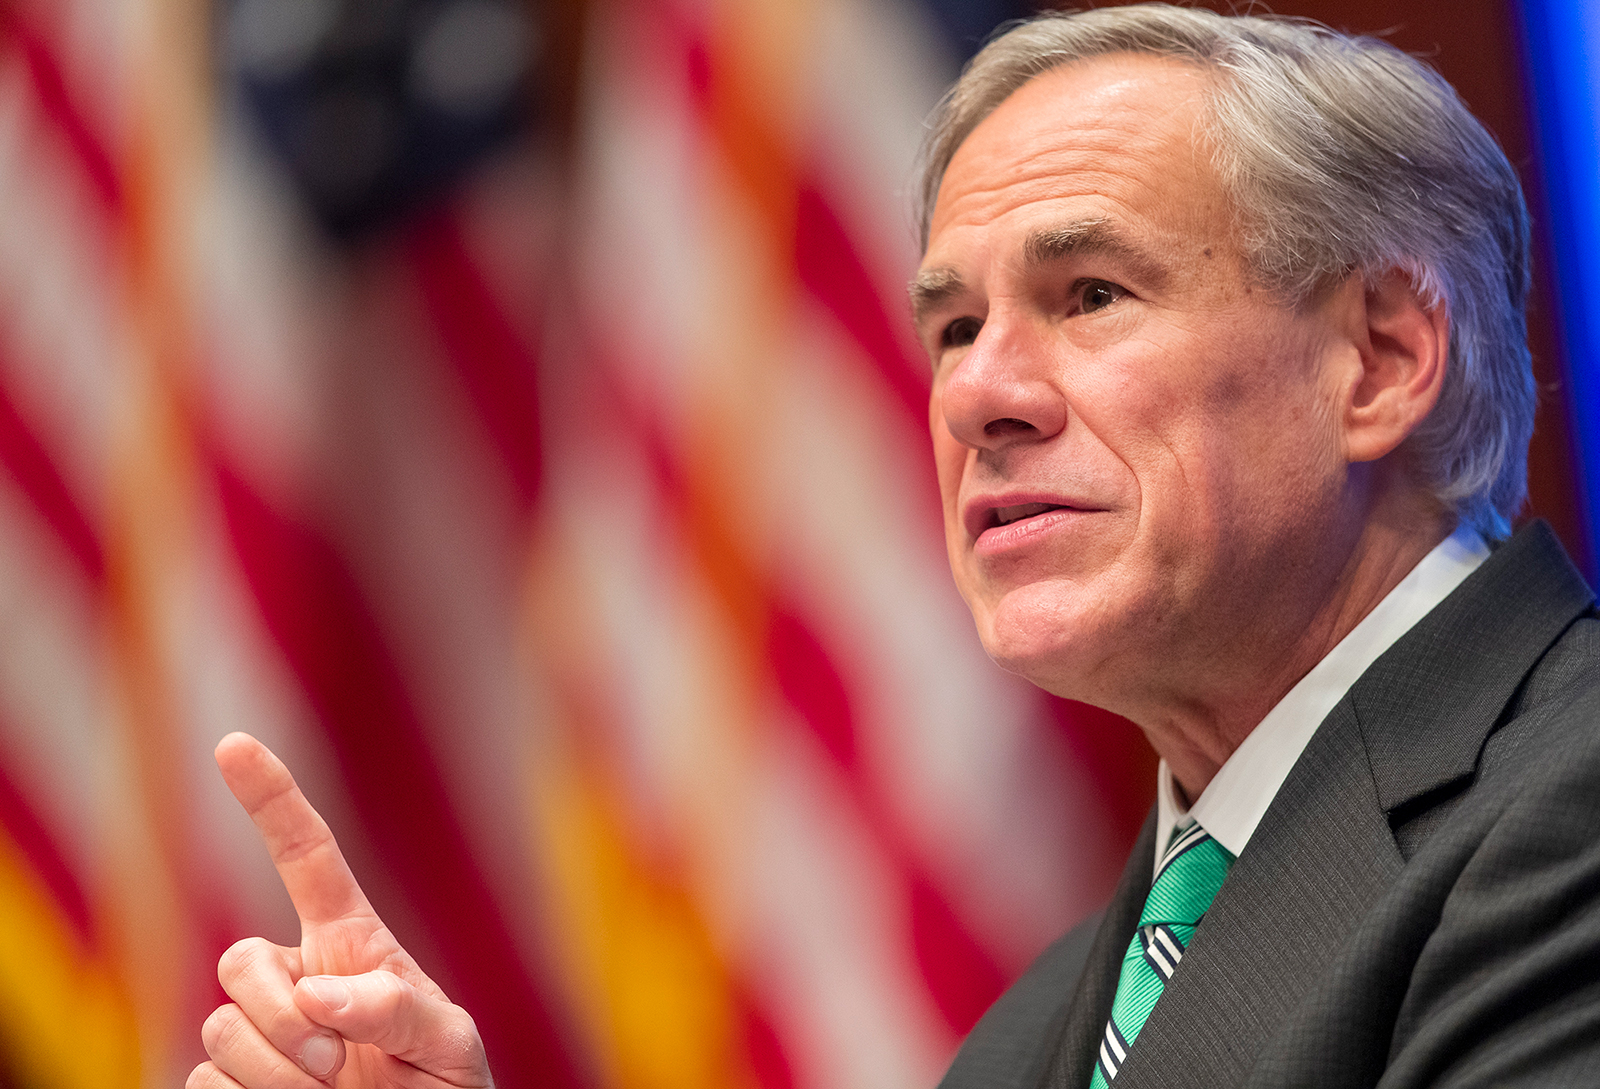 Texas Gov. Gregg Abbott speaks about reopening the state's economy in Austin, Texas on May 5.